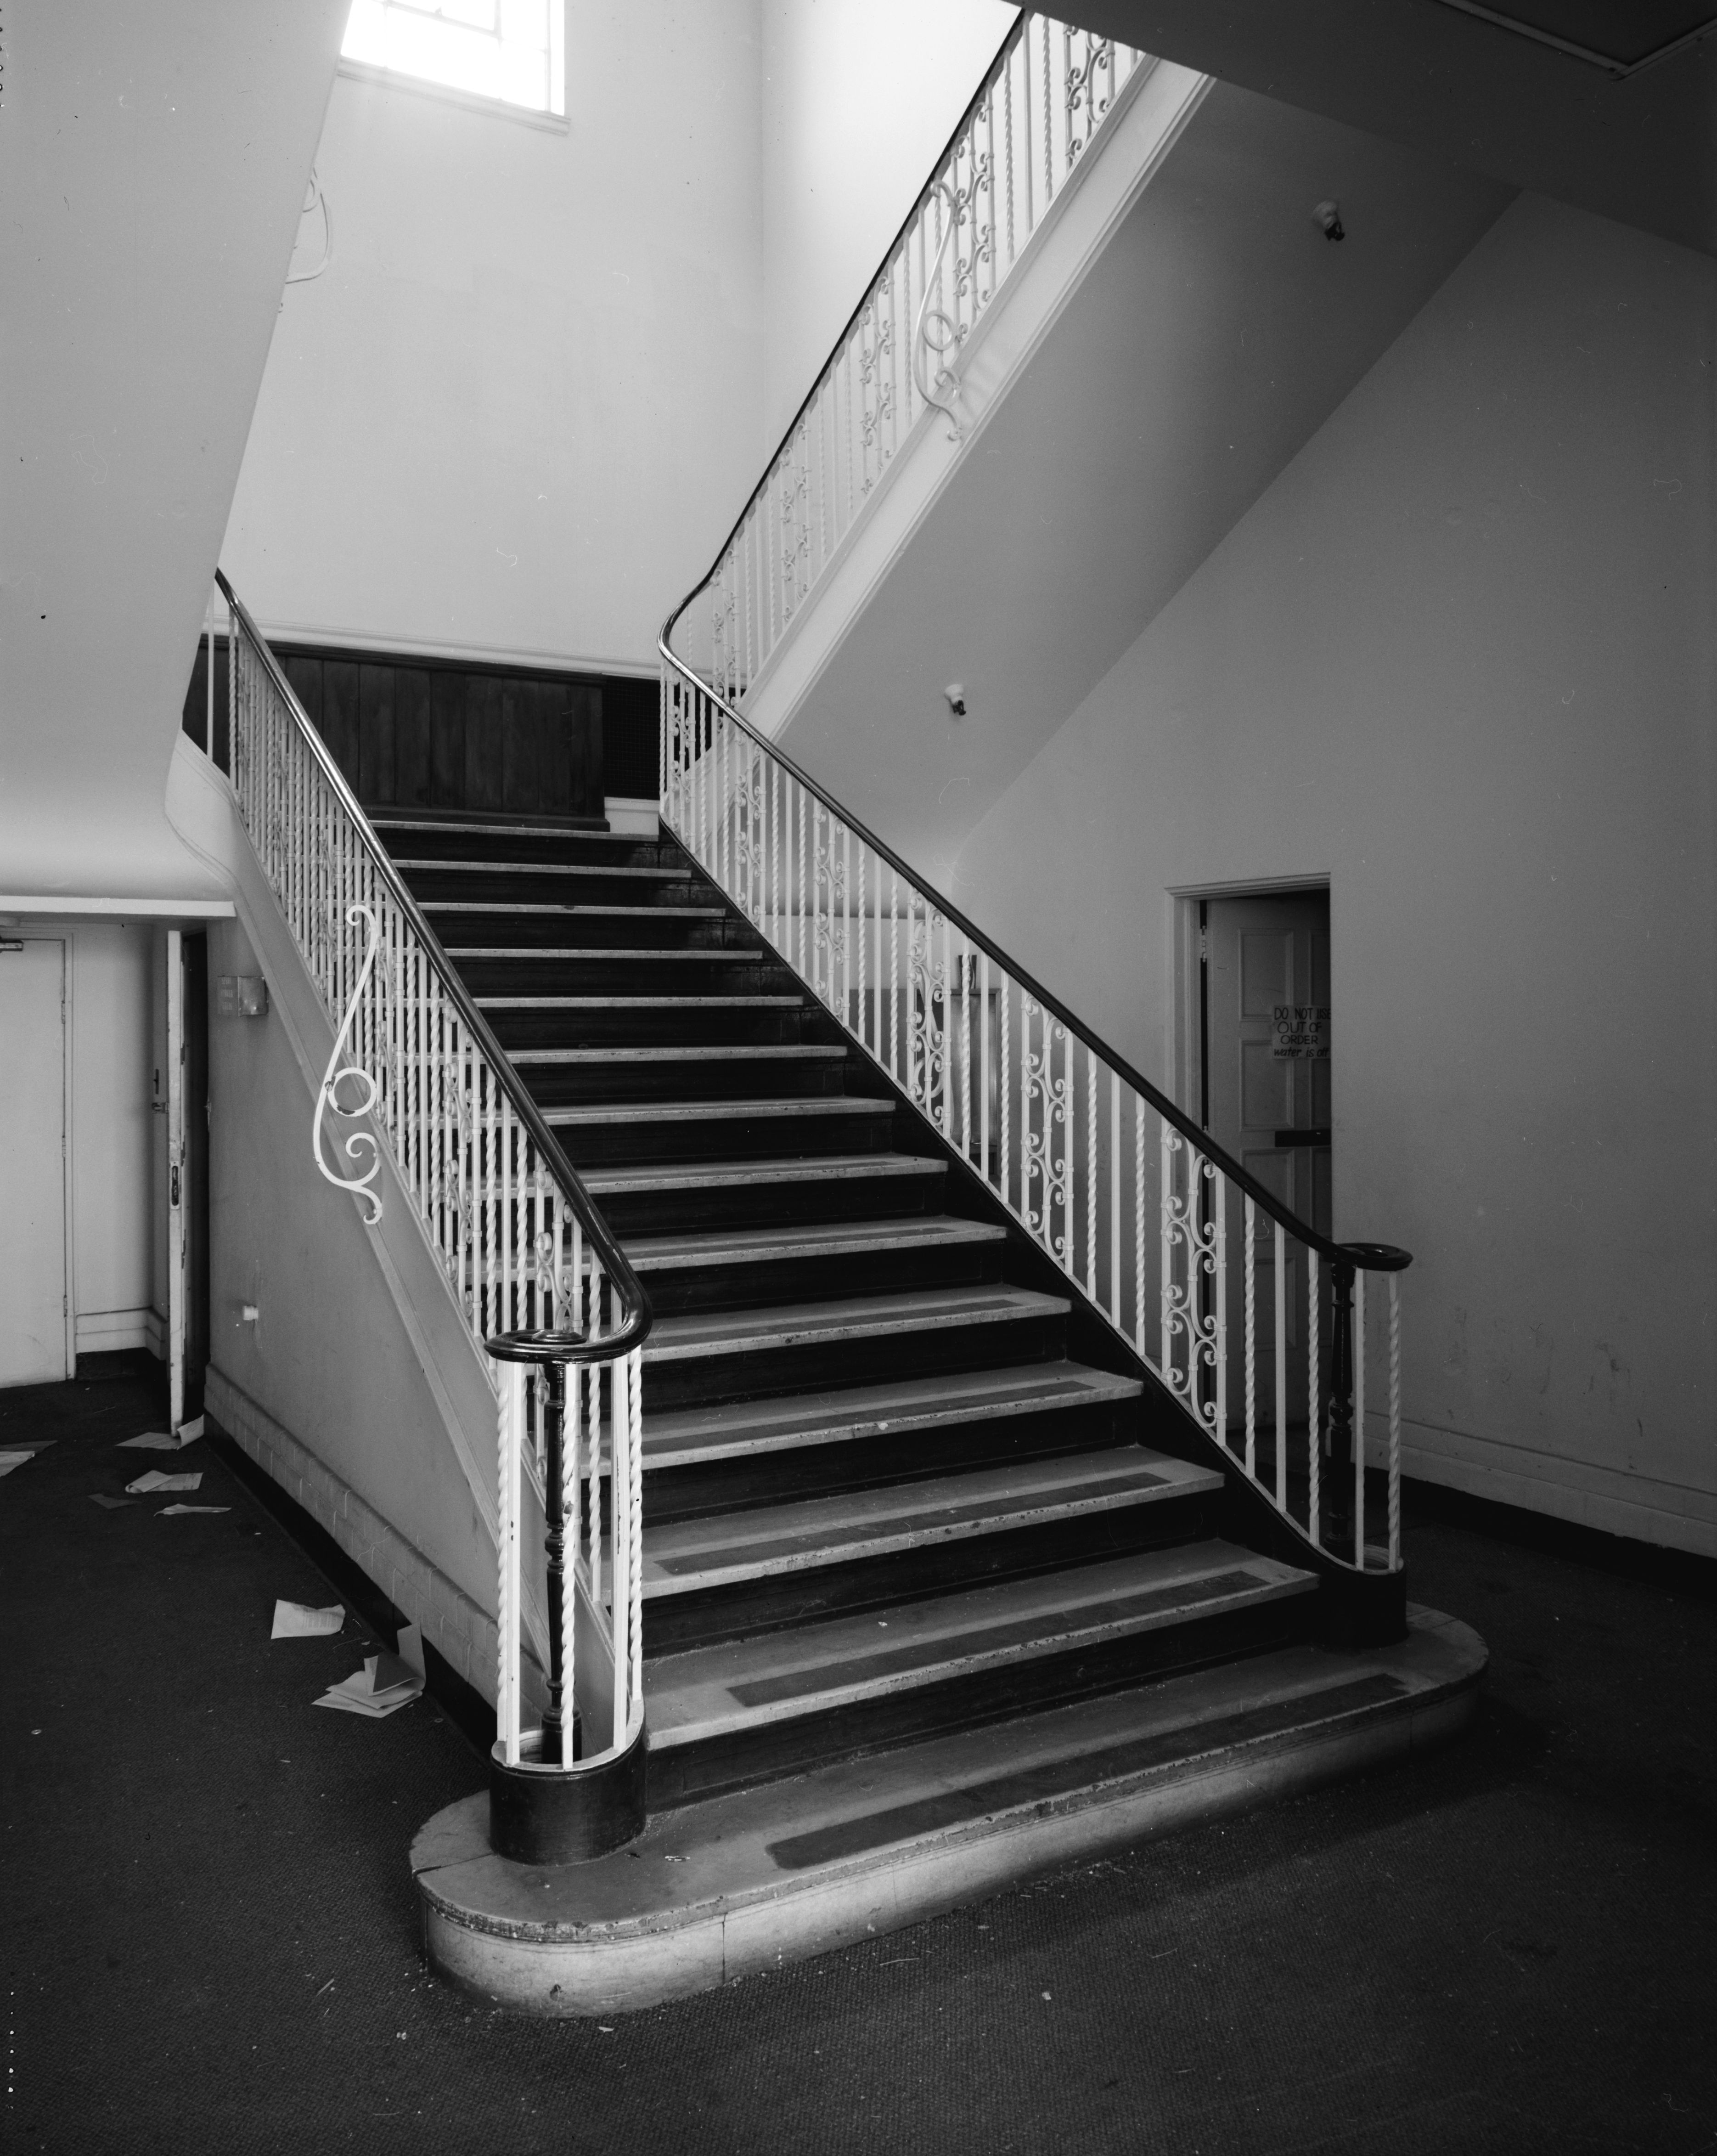 File:Stairway In Ford Plant In LA From HABS